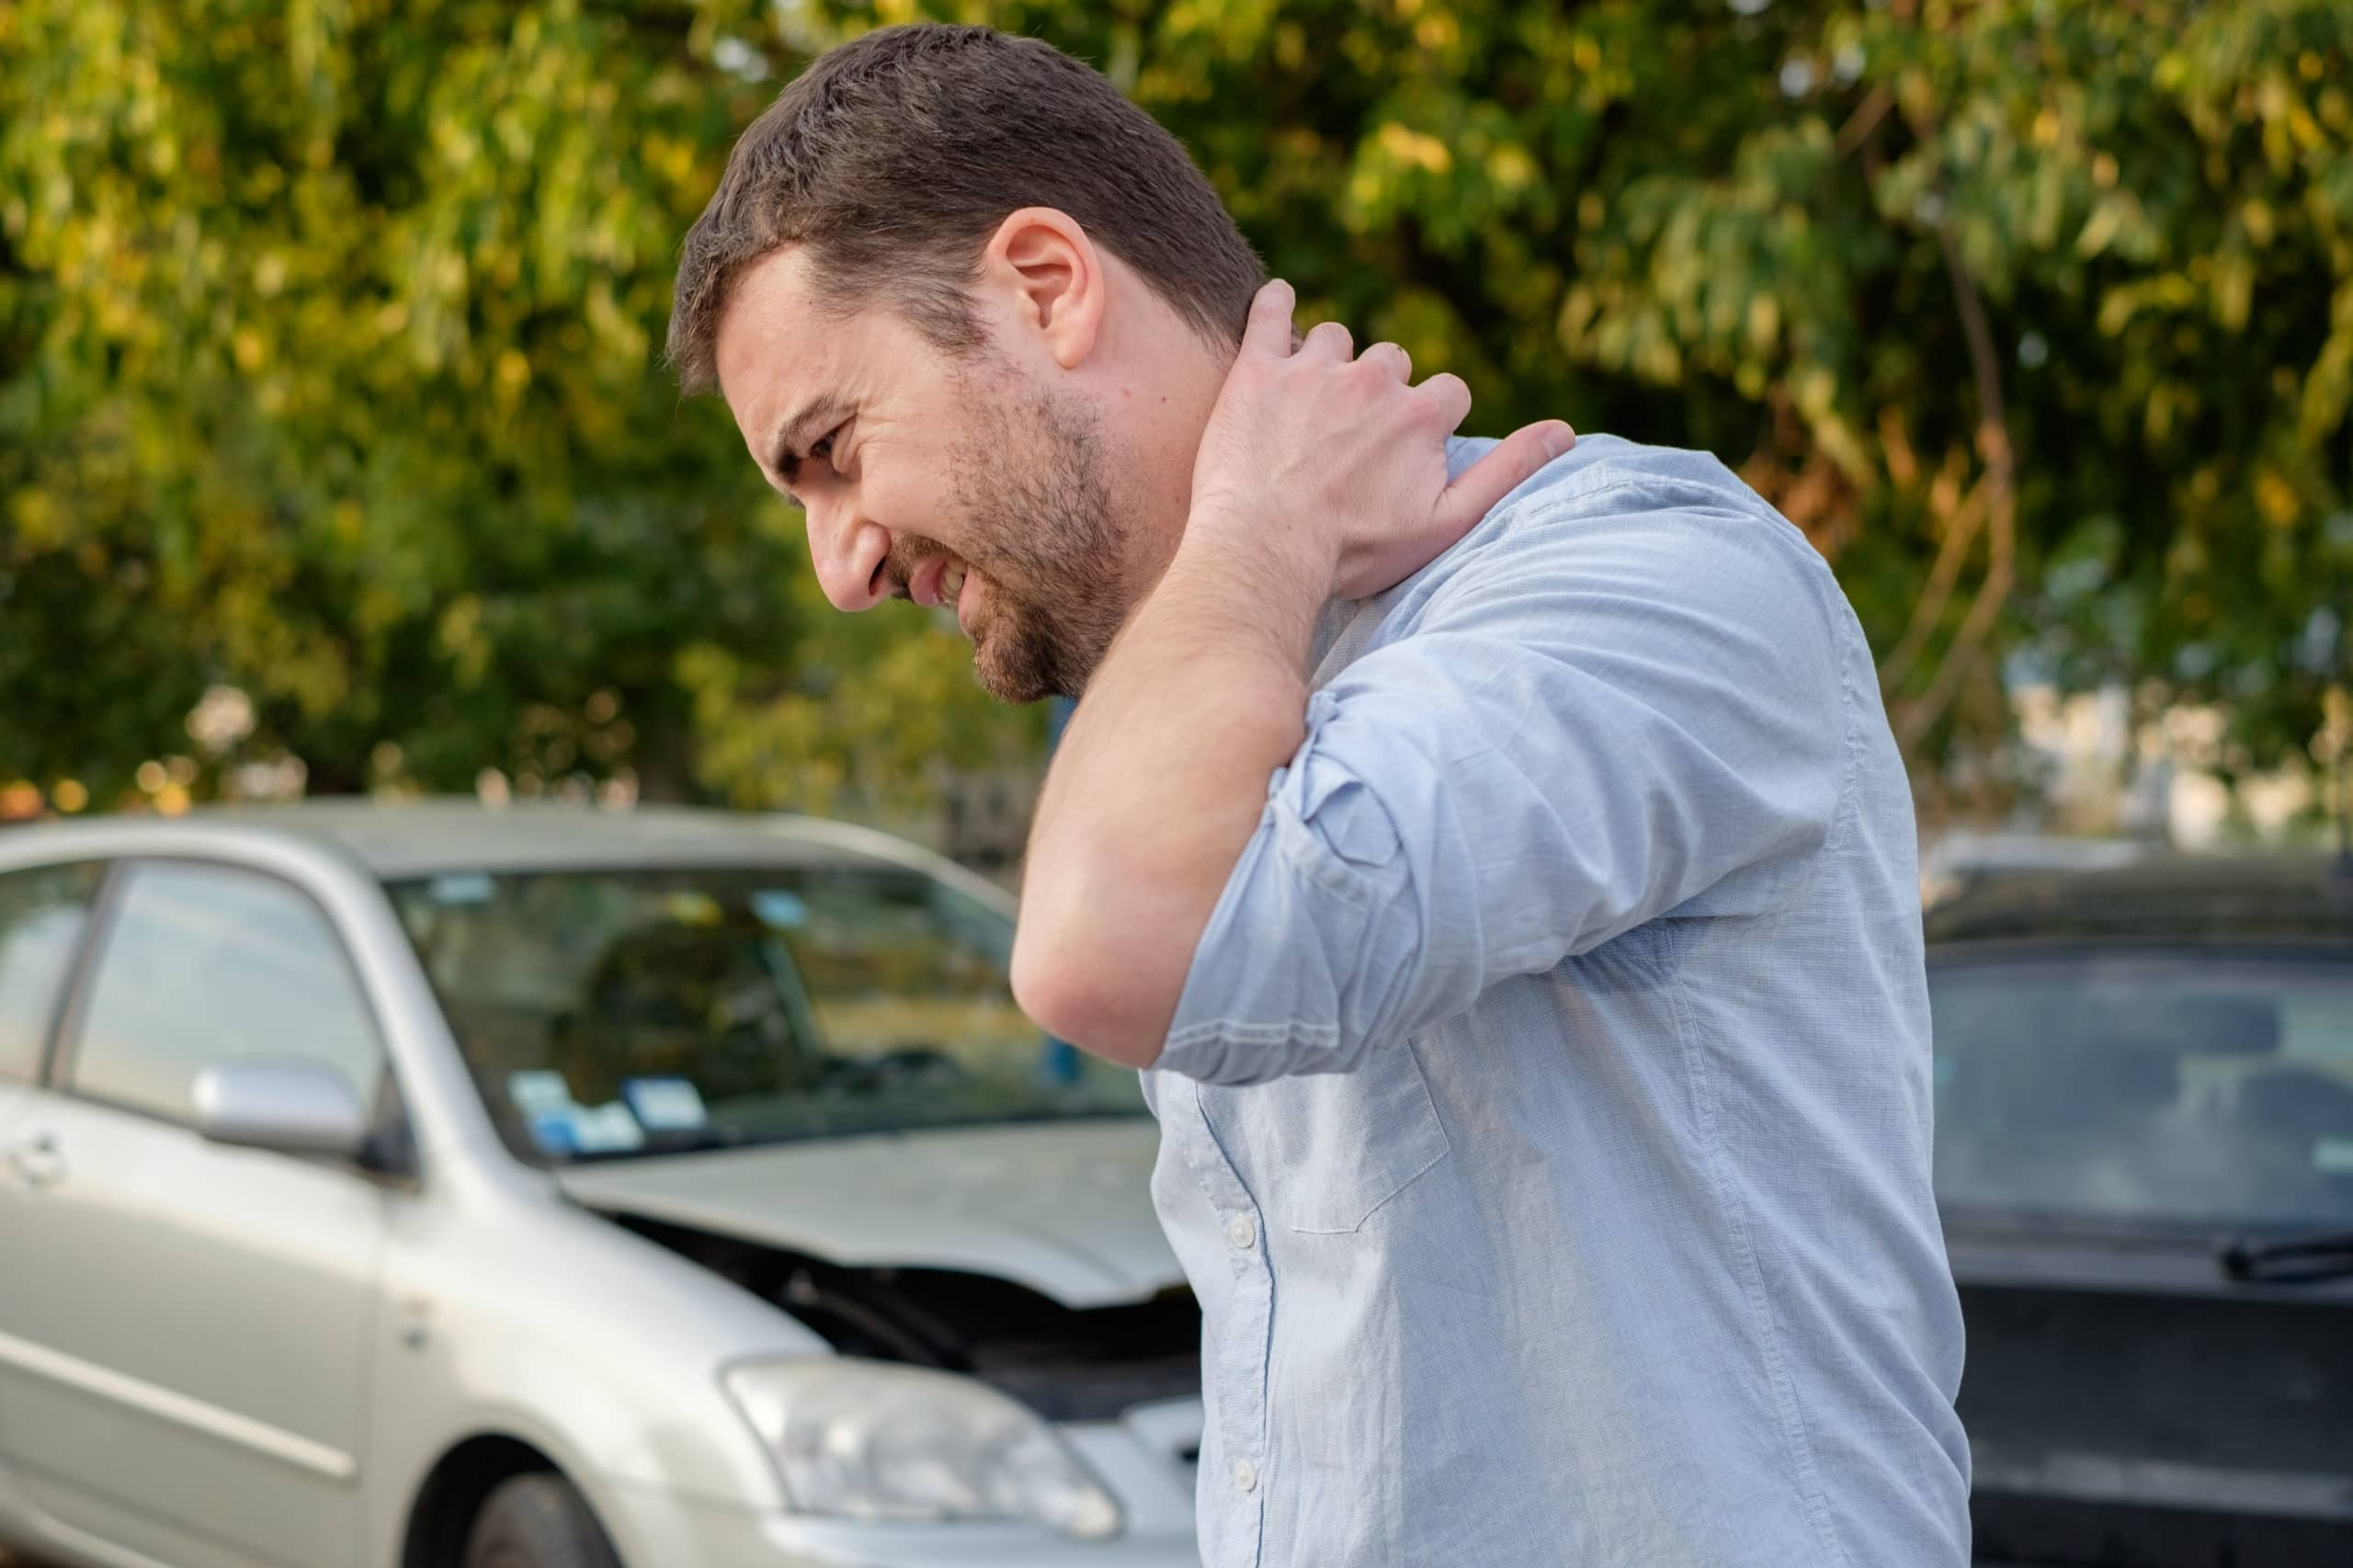 Whiplash – When Should I Contact a Personal Injury Attorney?